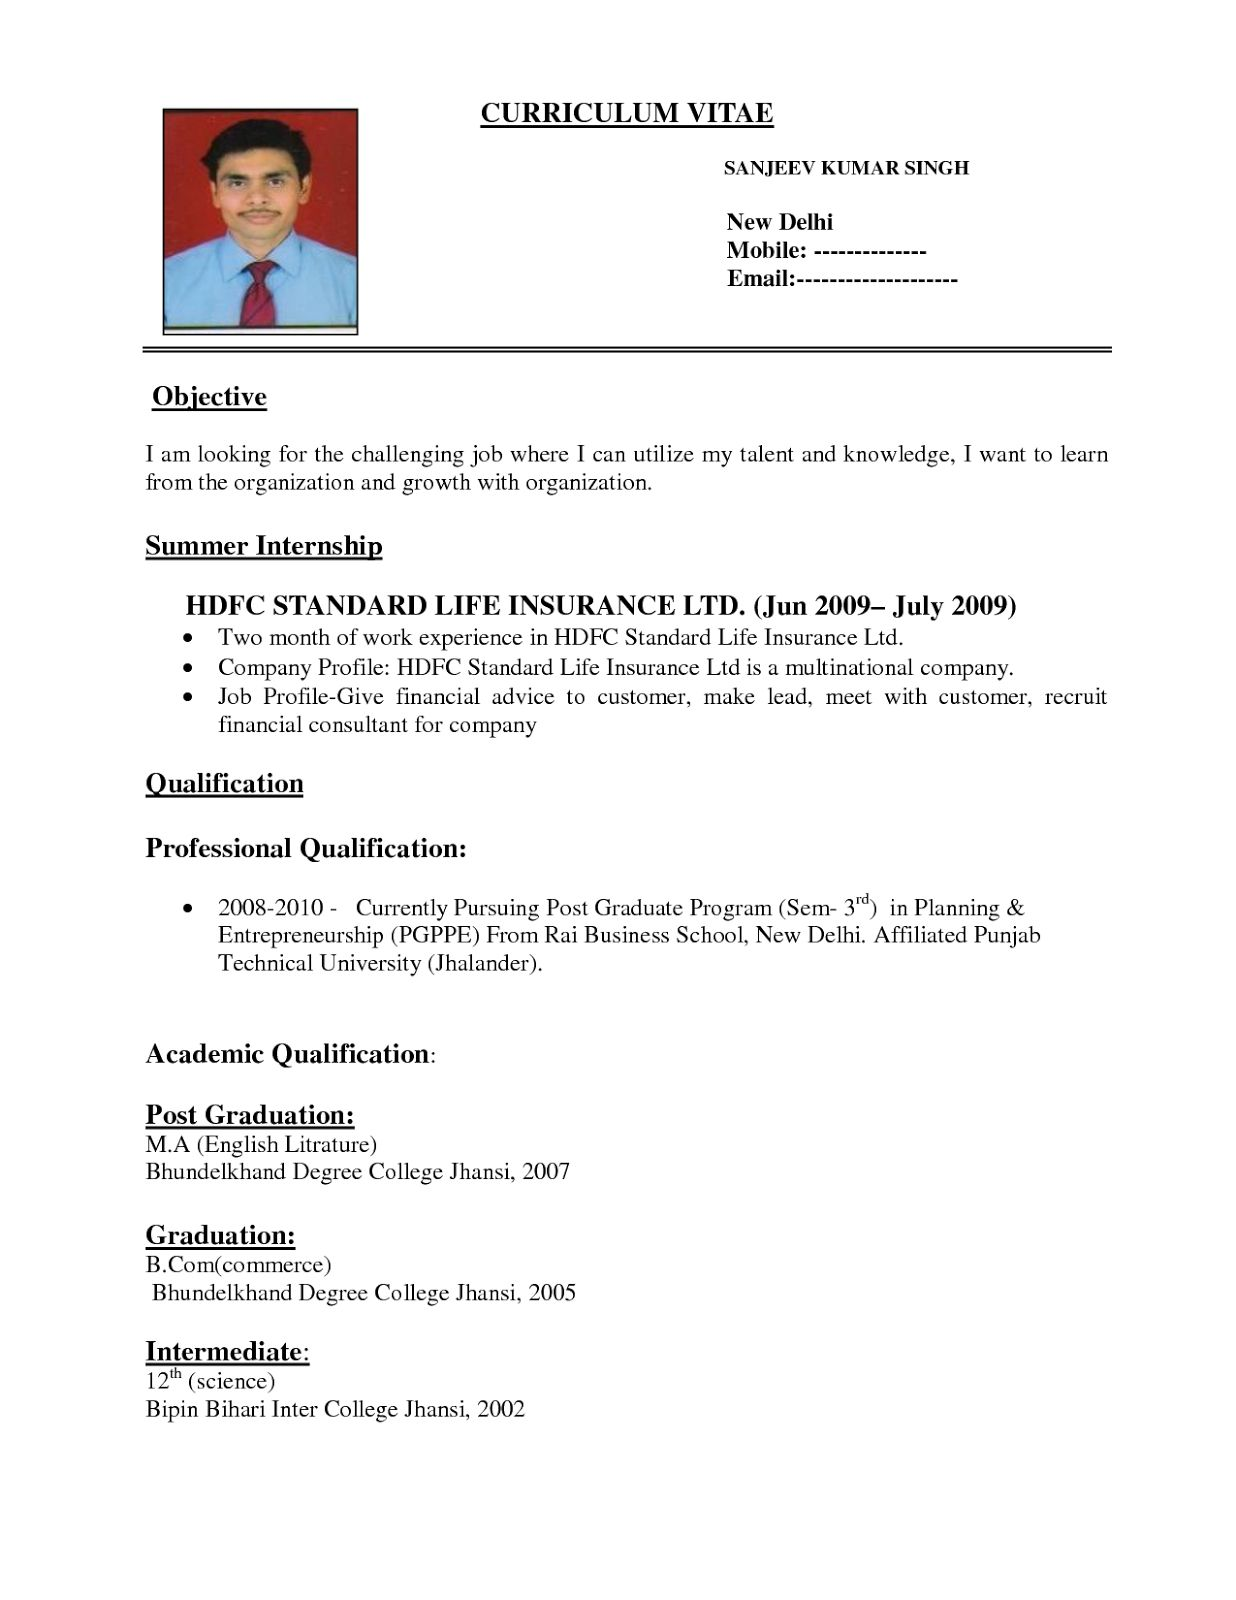 Resume Format Pdf Sample resume format, First job resume